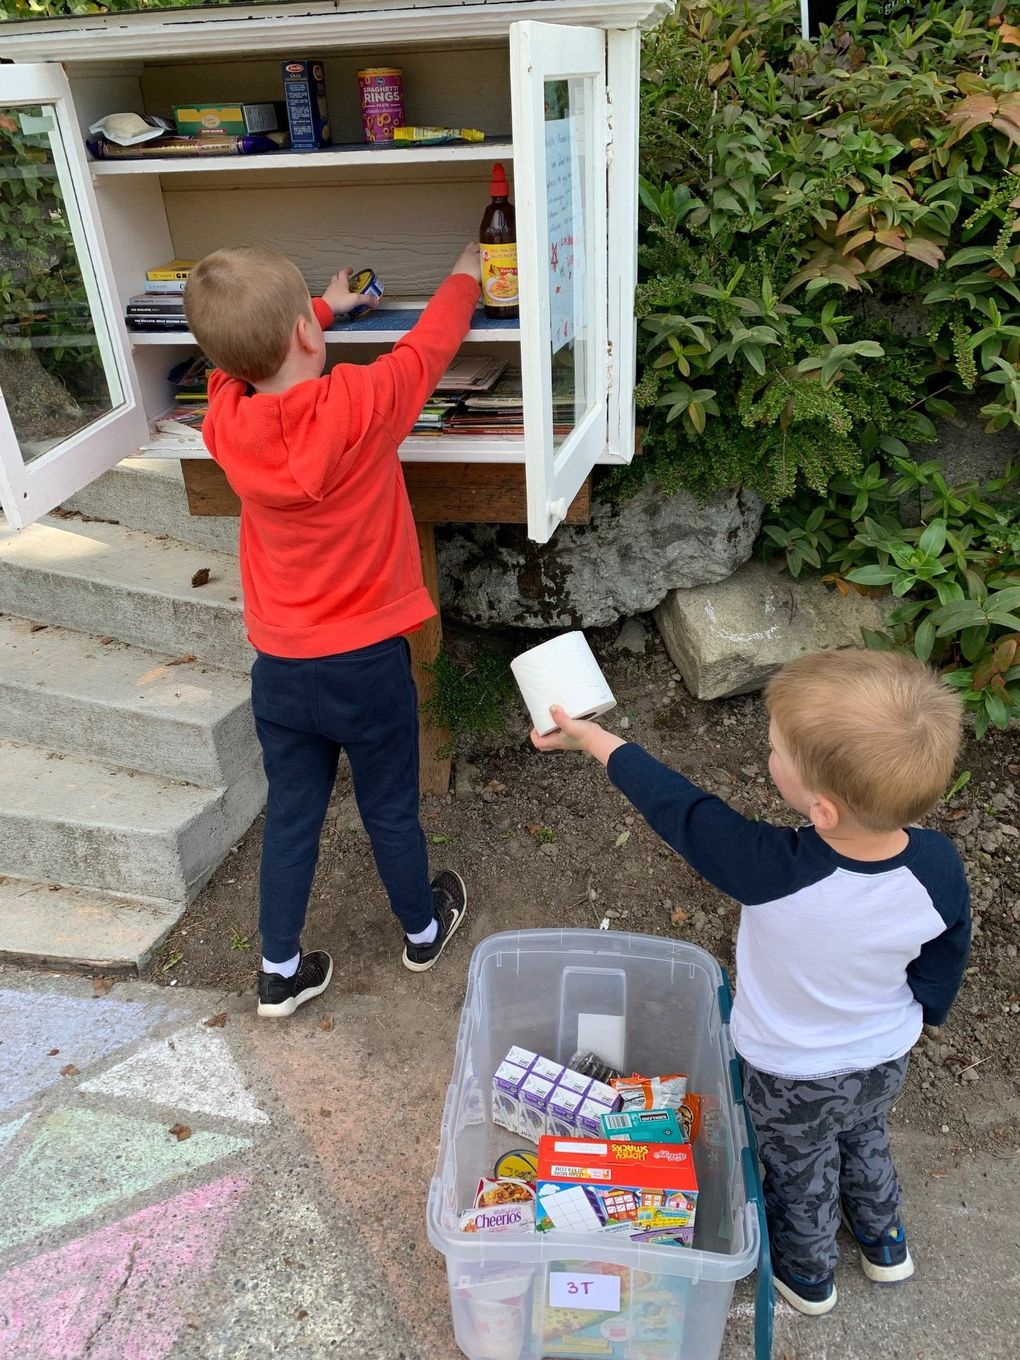 """Chelsea Dziedzic's sons stock their Mount Baker """"library"""" with books, toilet paper and food. The family put up the book-sharing box after the coronavirus outbreak. (Chelsea Dziedzic)"""